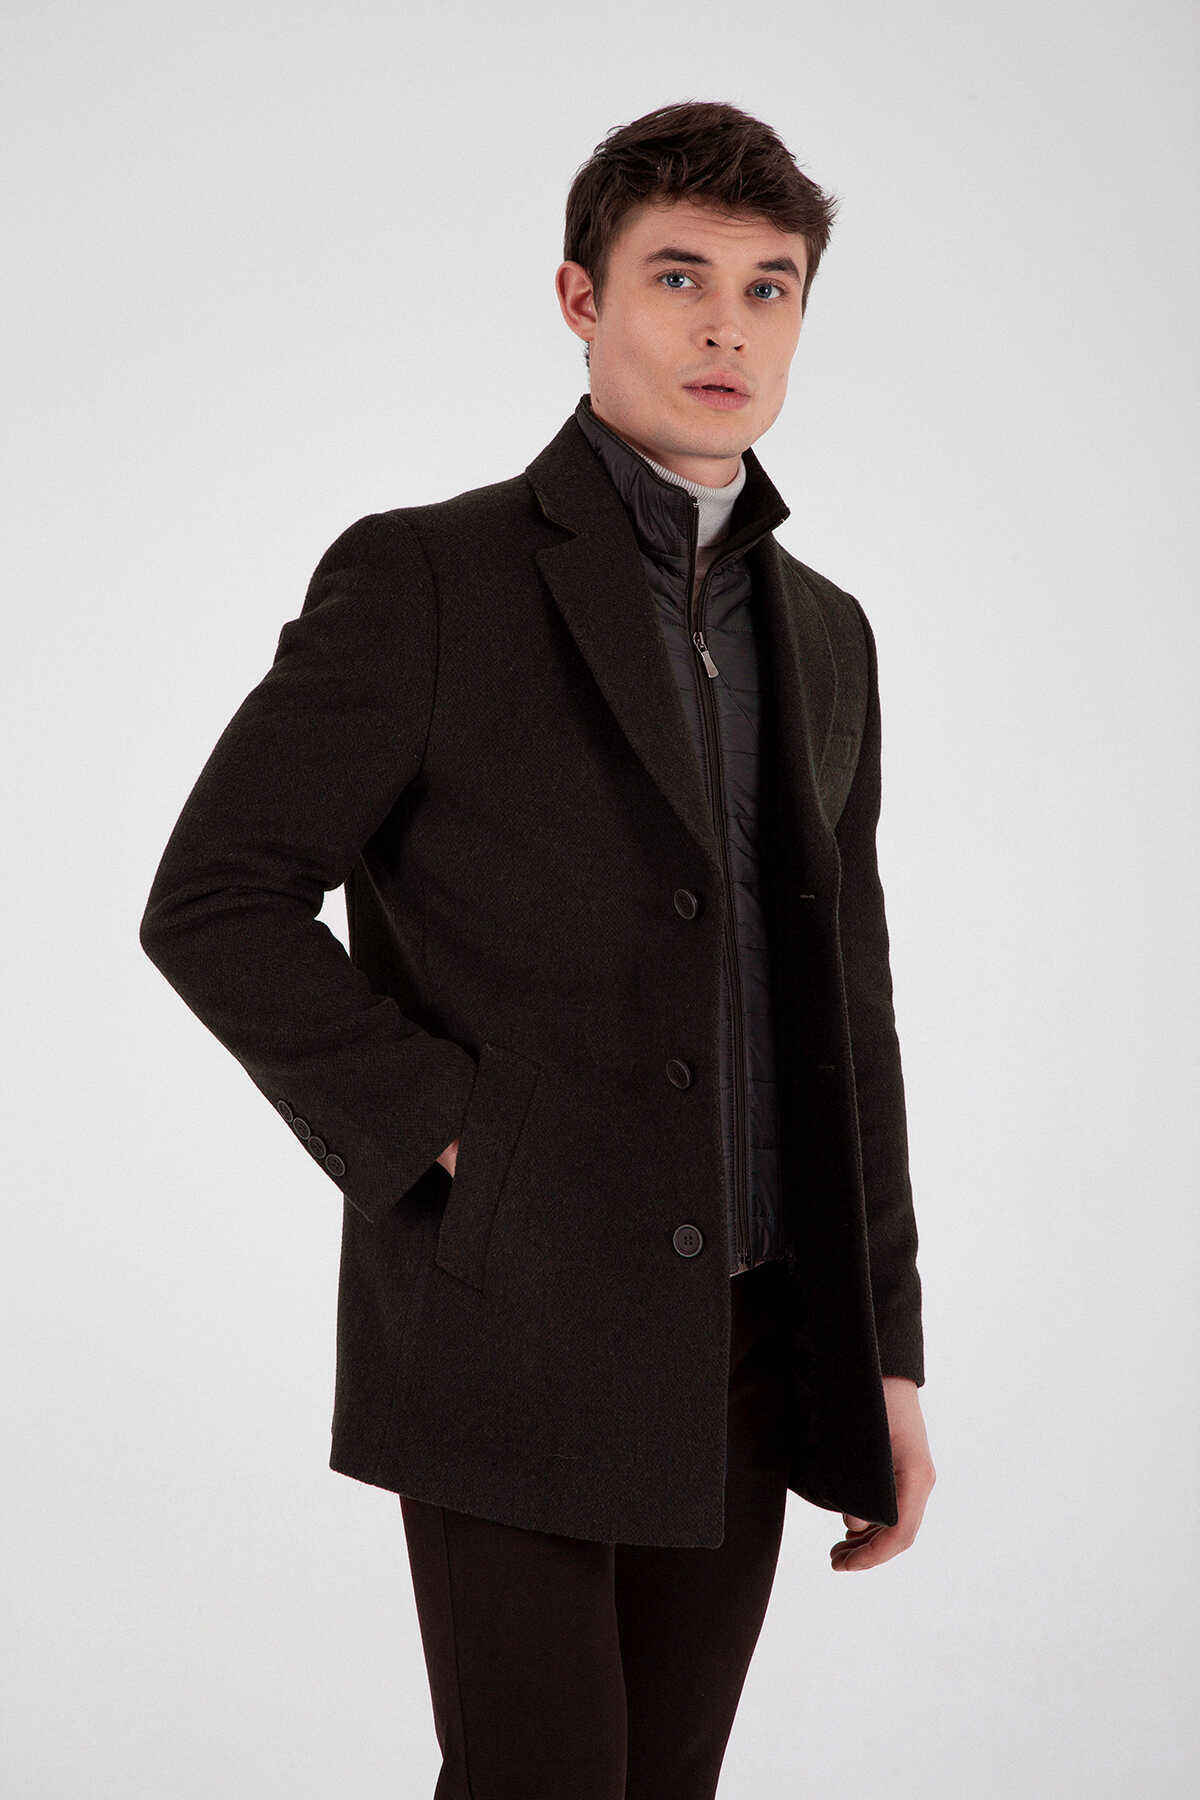 - Brown Patterned Slim Fit Coat